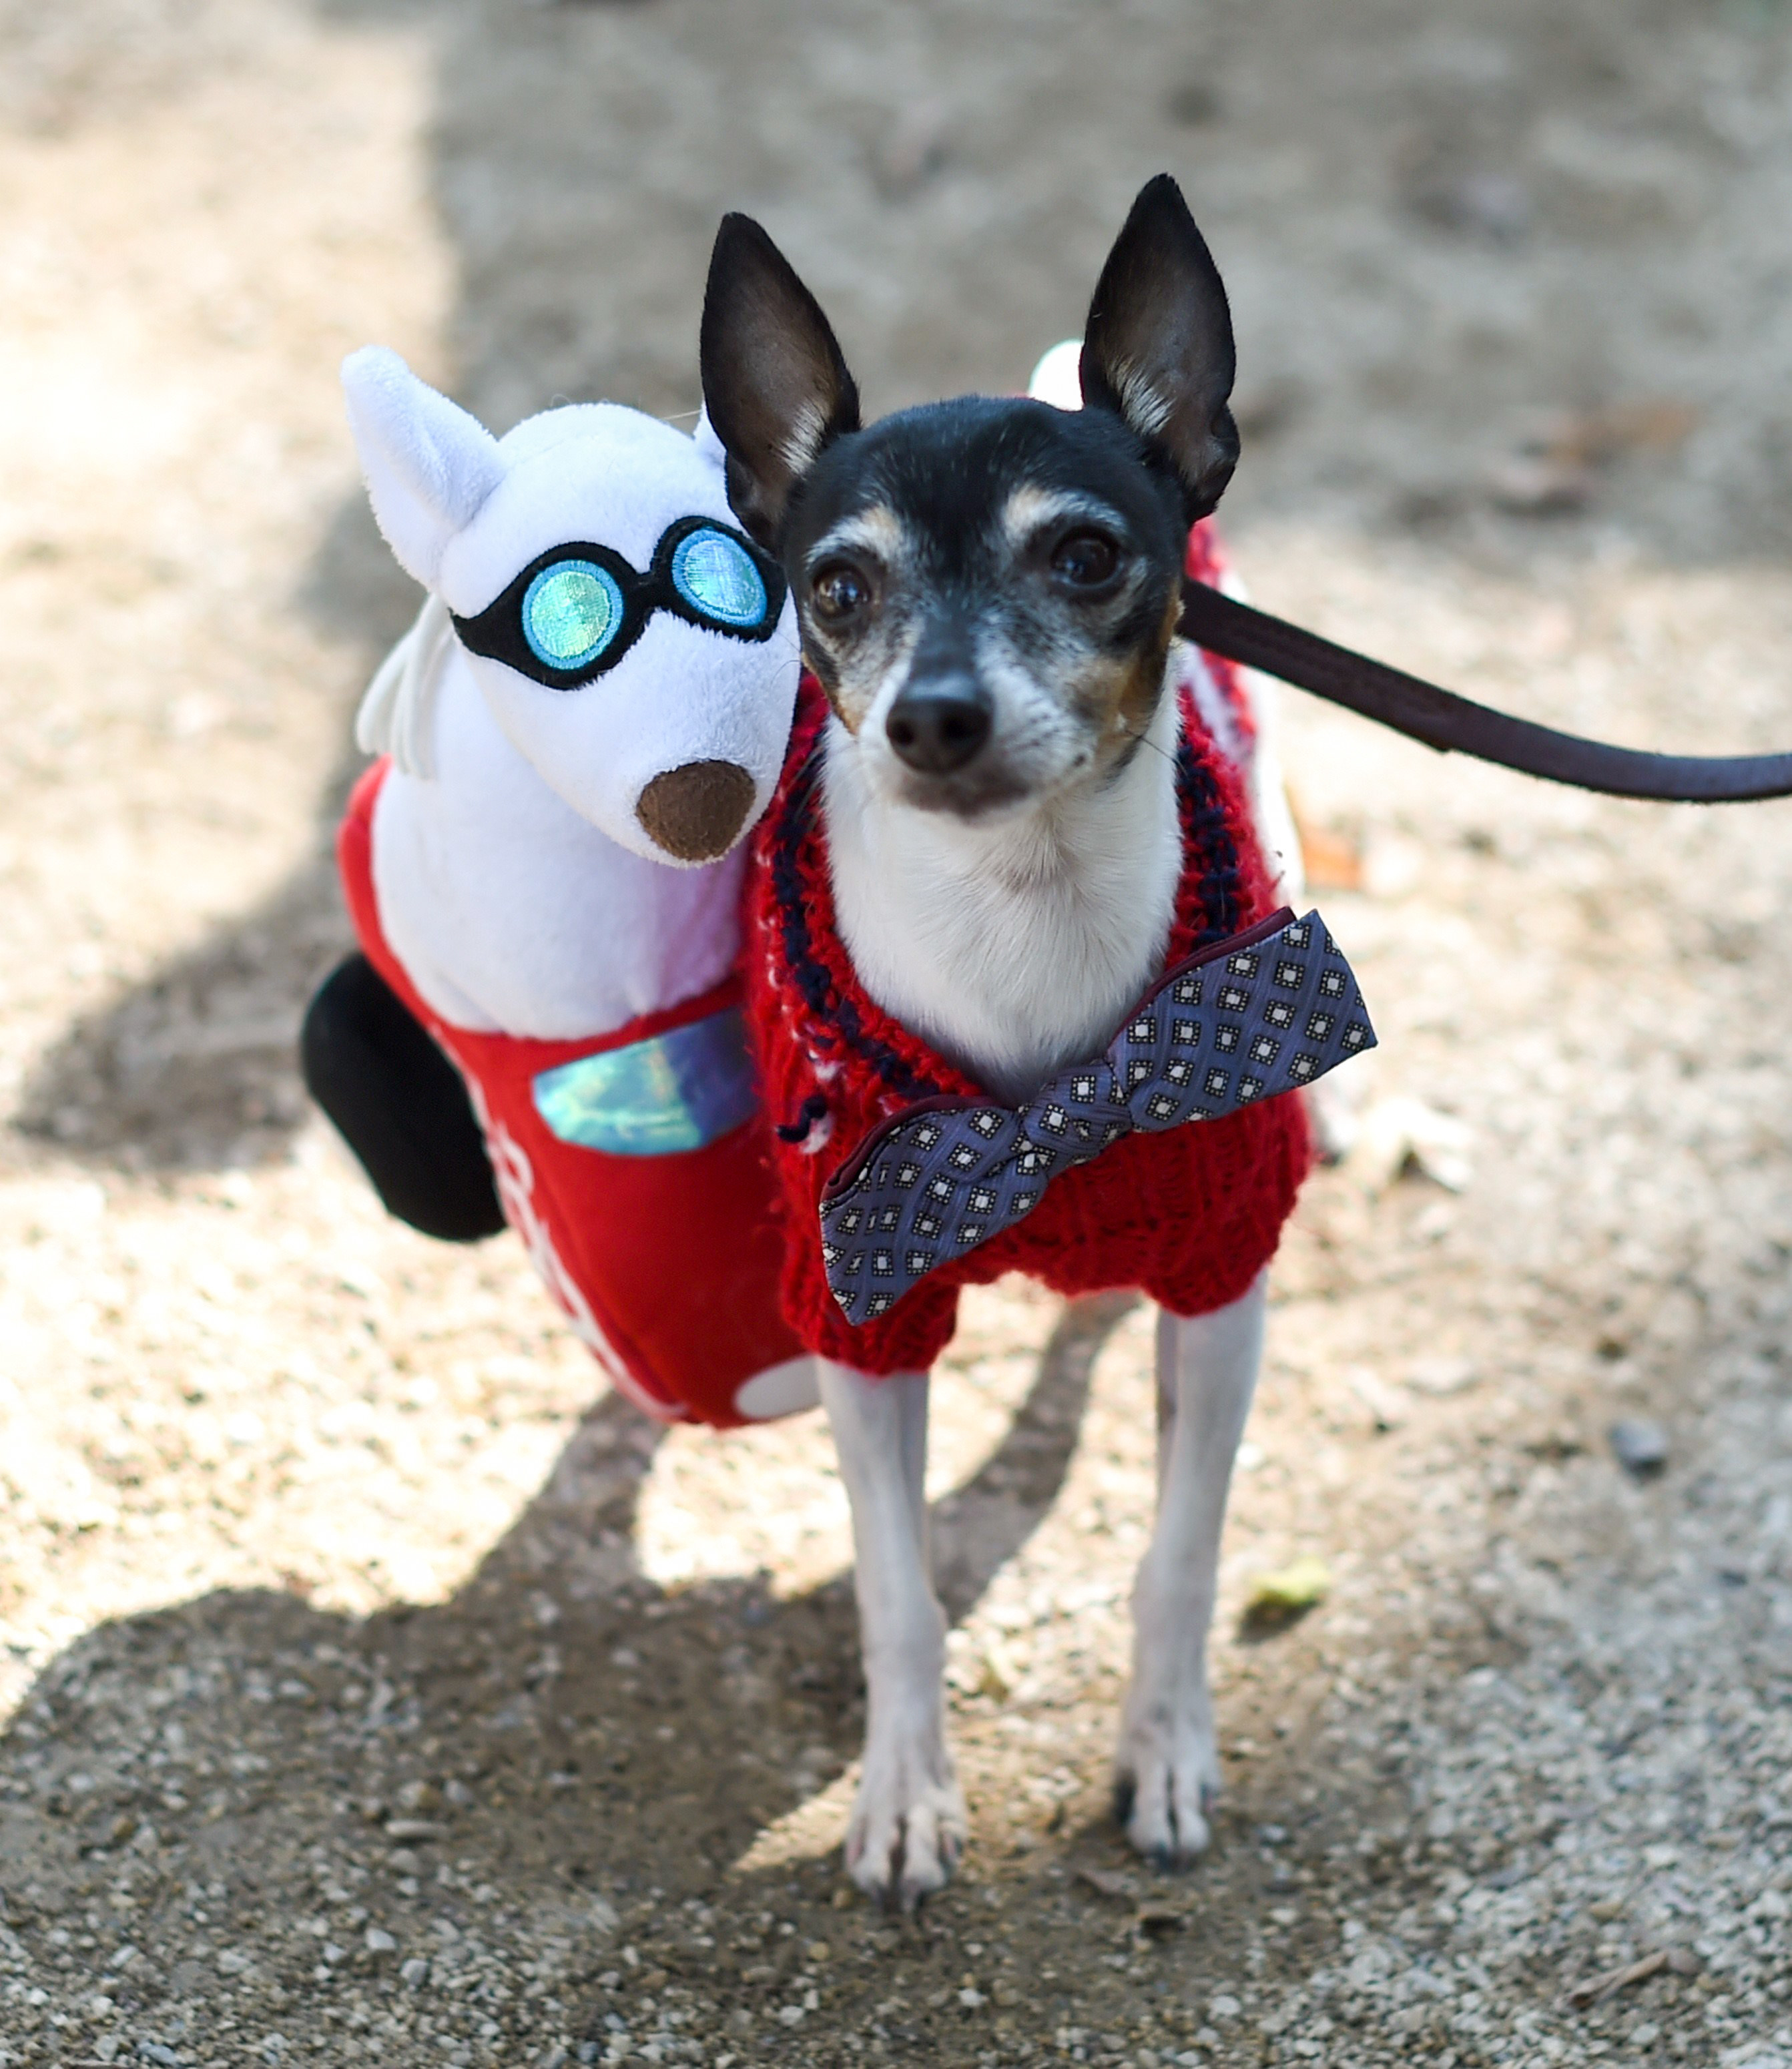 small dog wearing a sweater as a costume with a fake dog attached to the right side of their sweater